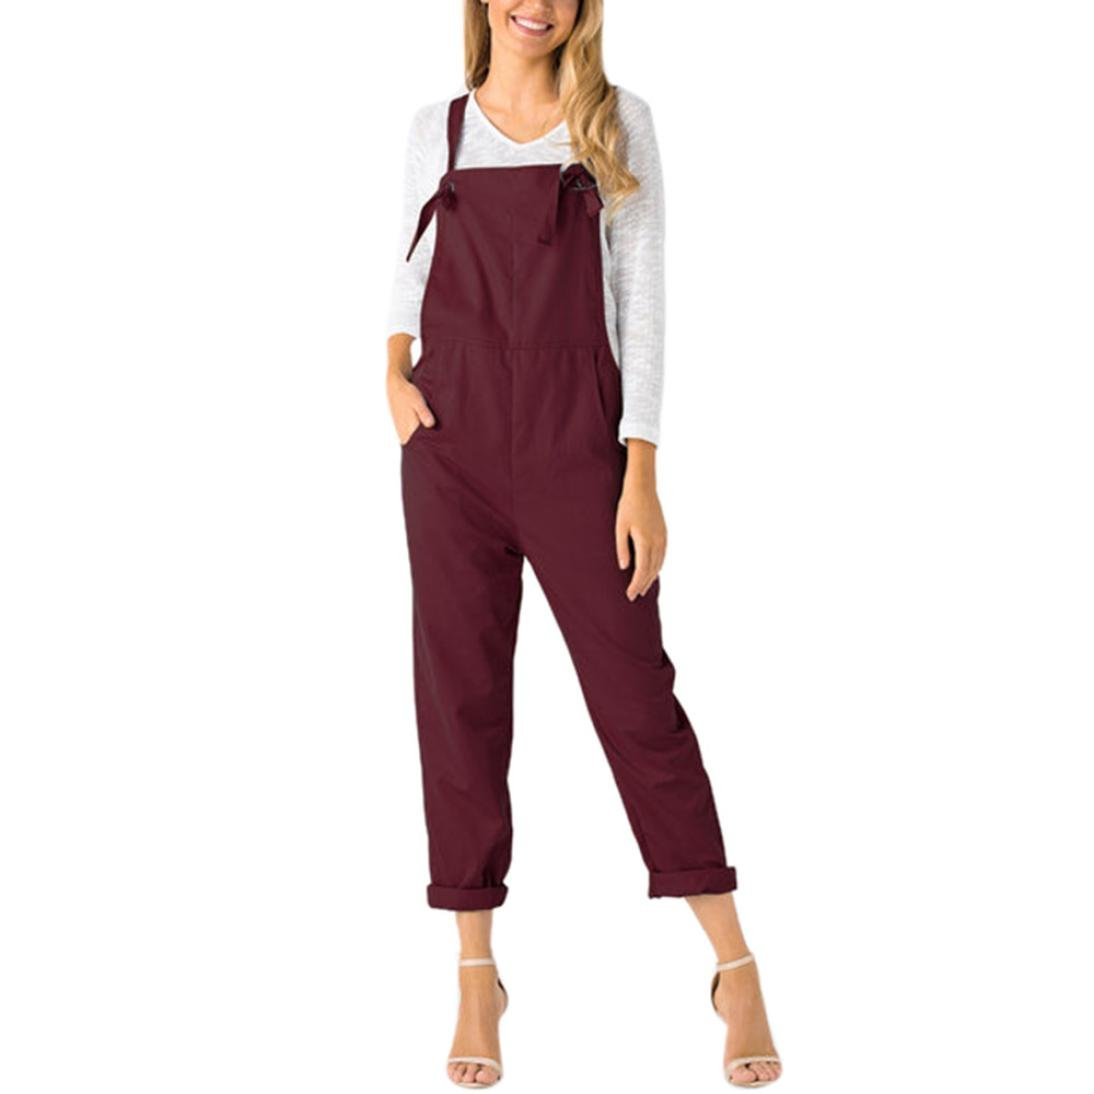 Kingfansion Women Dungarees Overall Strap Sleeveless Long Playsuit Jumpsuit Rompers